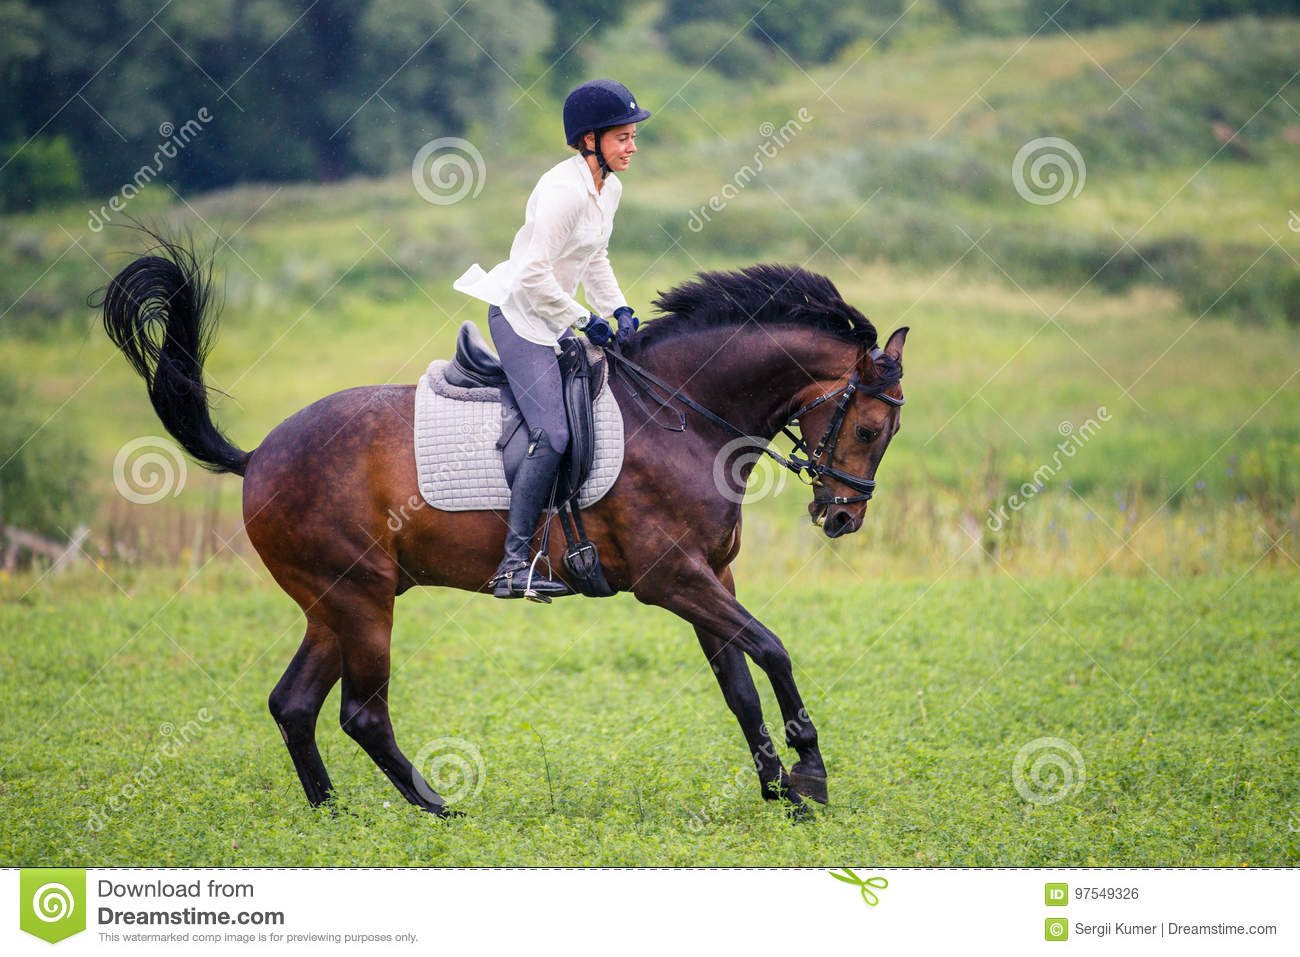 Young Rider Woman Galloping On Bay Horse On Meadow Stock Photo Image Of Animal Graceful 97549326